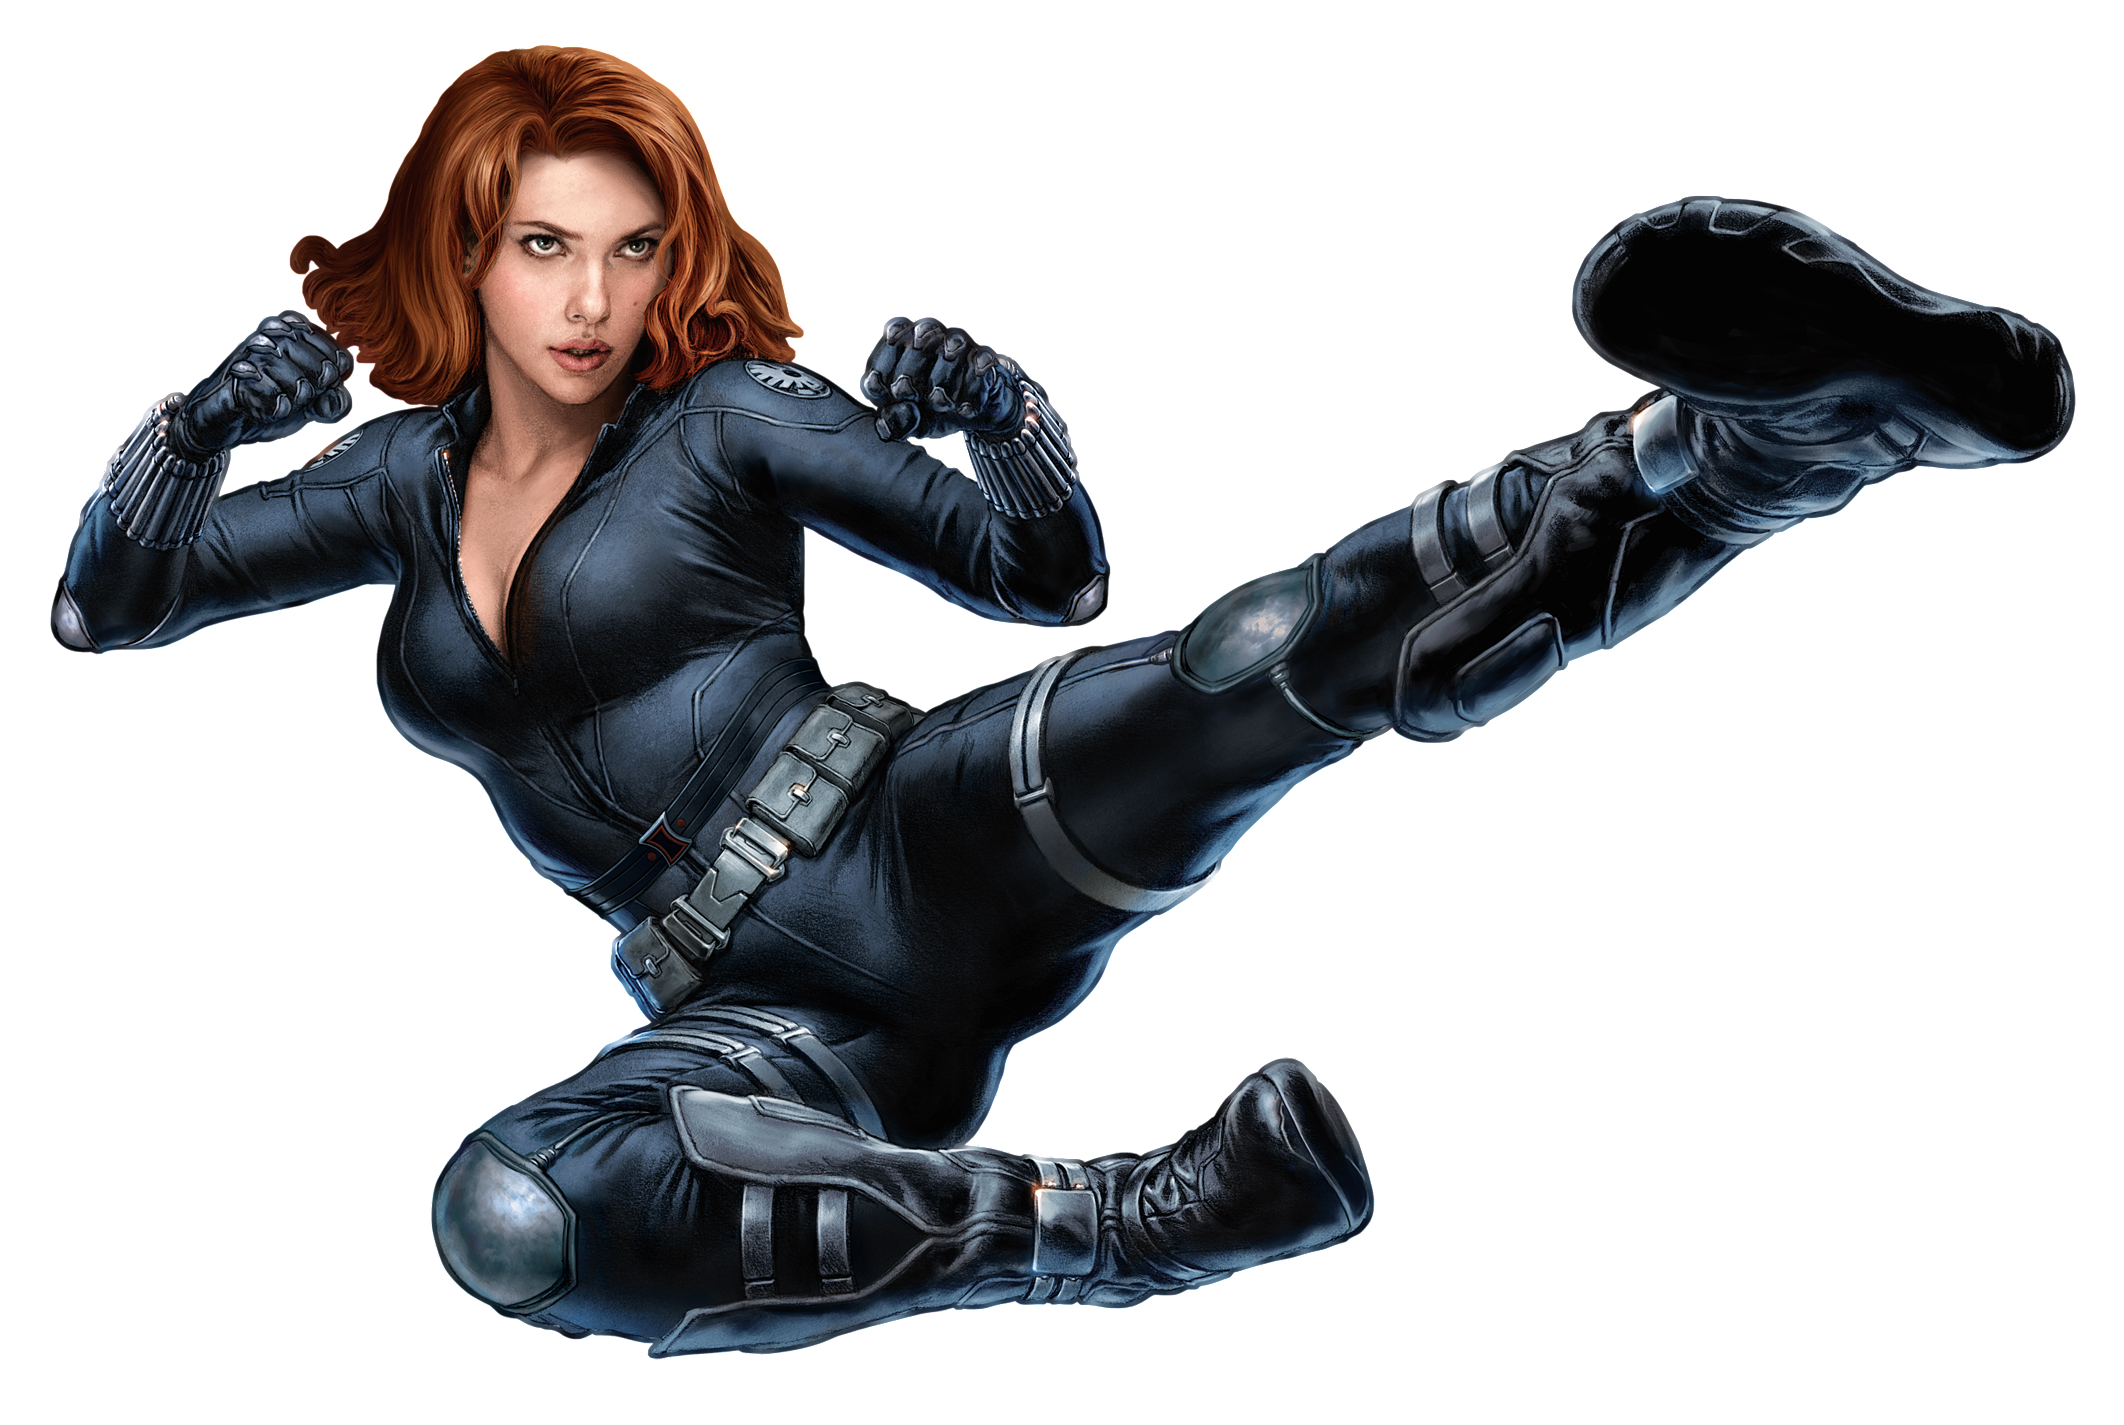 Black Widow High Quality Wallpapers